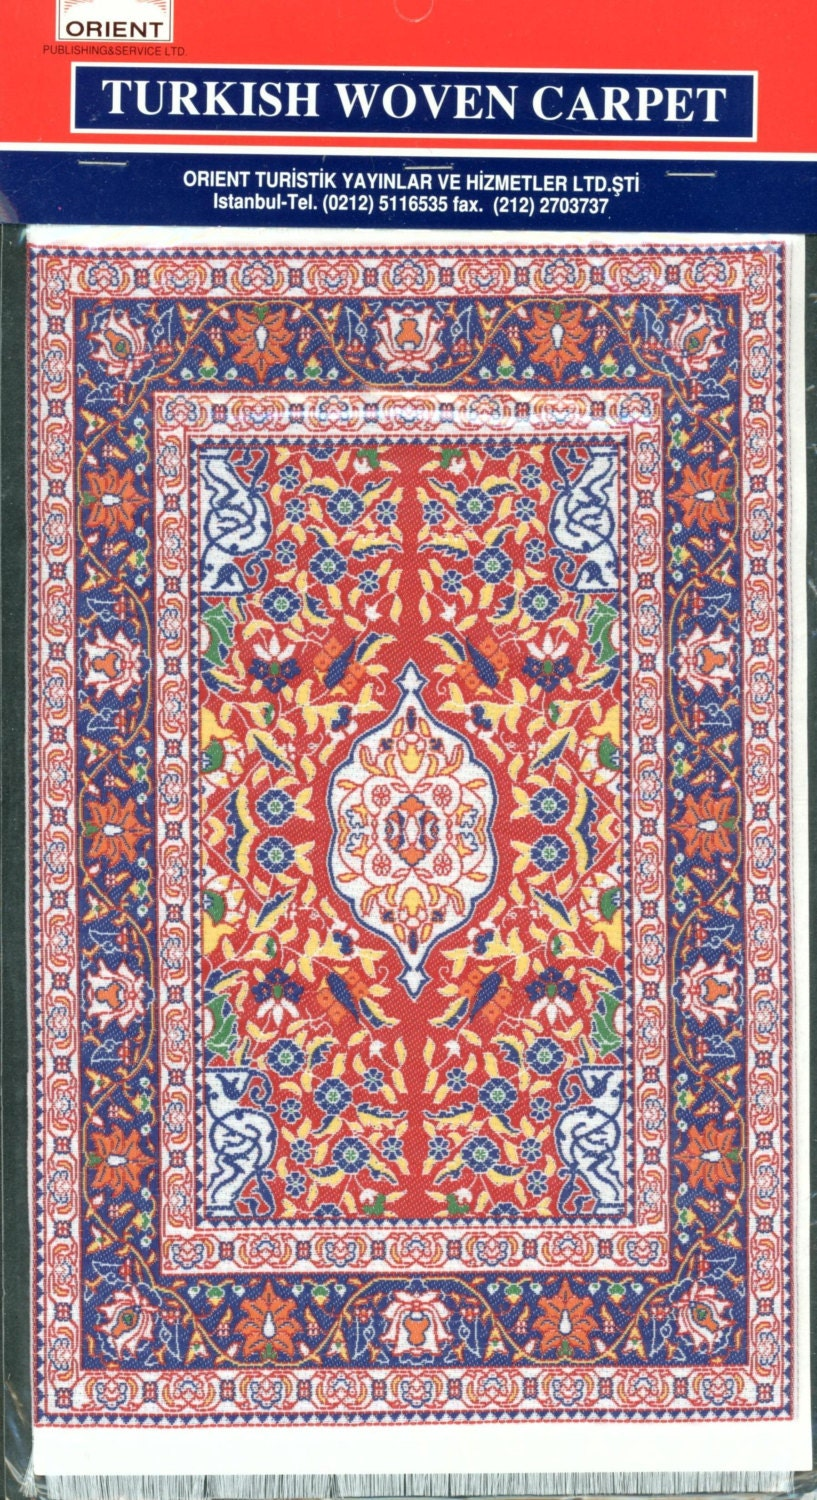 Turkish Woven Miniature Carpet 5 5 8 X 9 1 2 Inches Stk